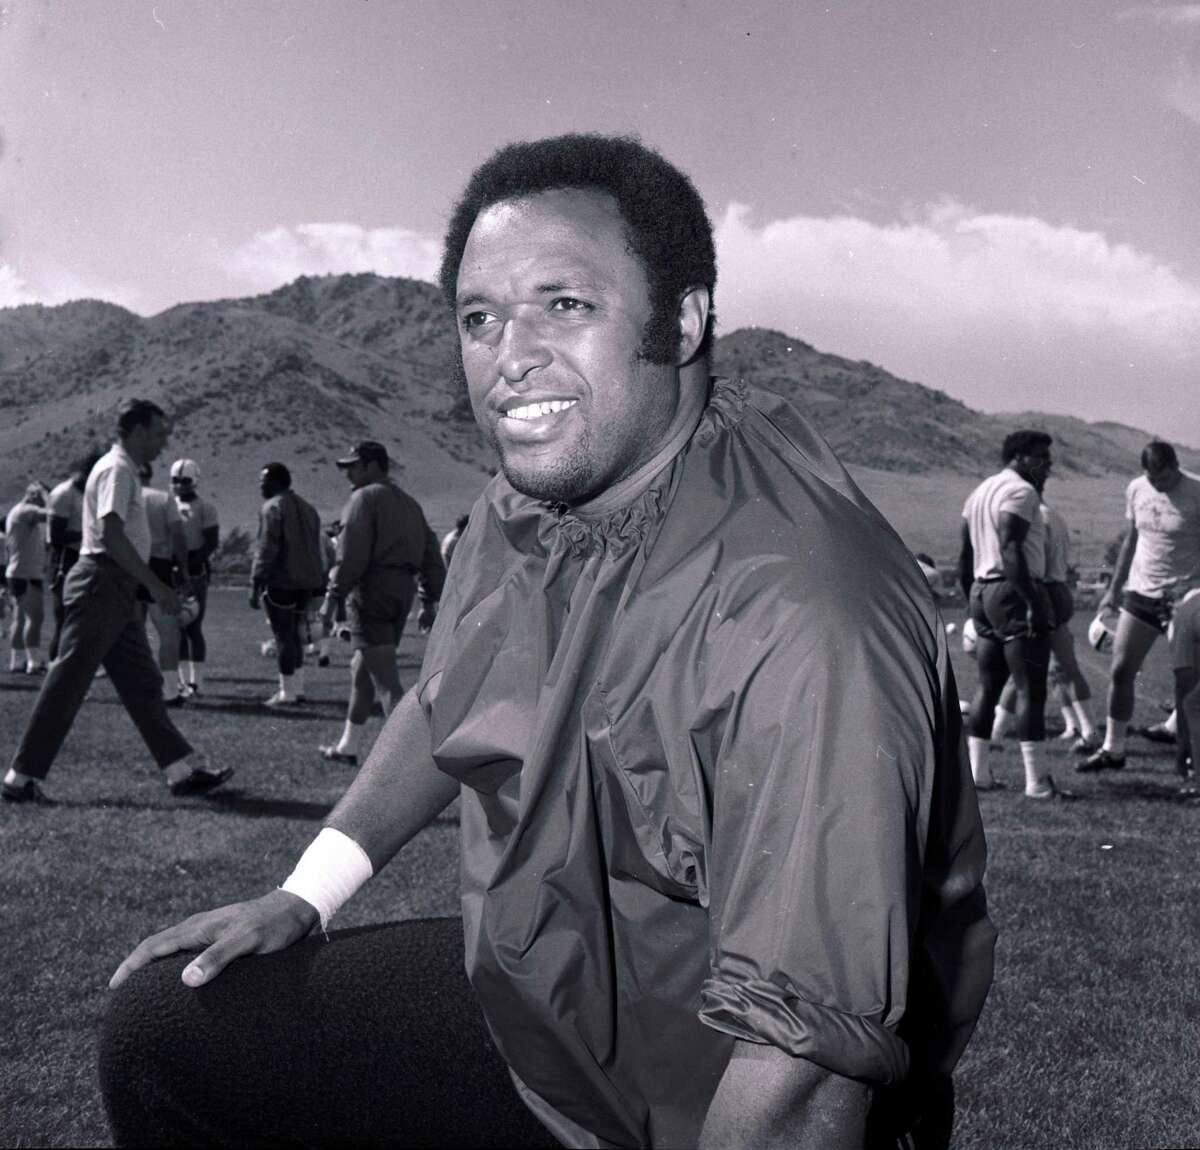 This Aug. 26, 1970 file photo shows Baltimore Colts football player John Mackey. Hall of Fame NFL player John Mackey has died. He was 69. Chad Steele, a spokesman for the Baltimore Ravens, said Thursday, July 7, 2011, that Mackey's wife had notified the team about her husband's death. (AP Photo/File)